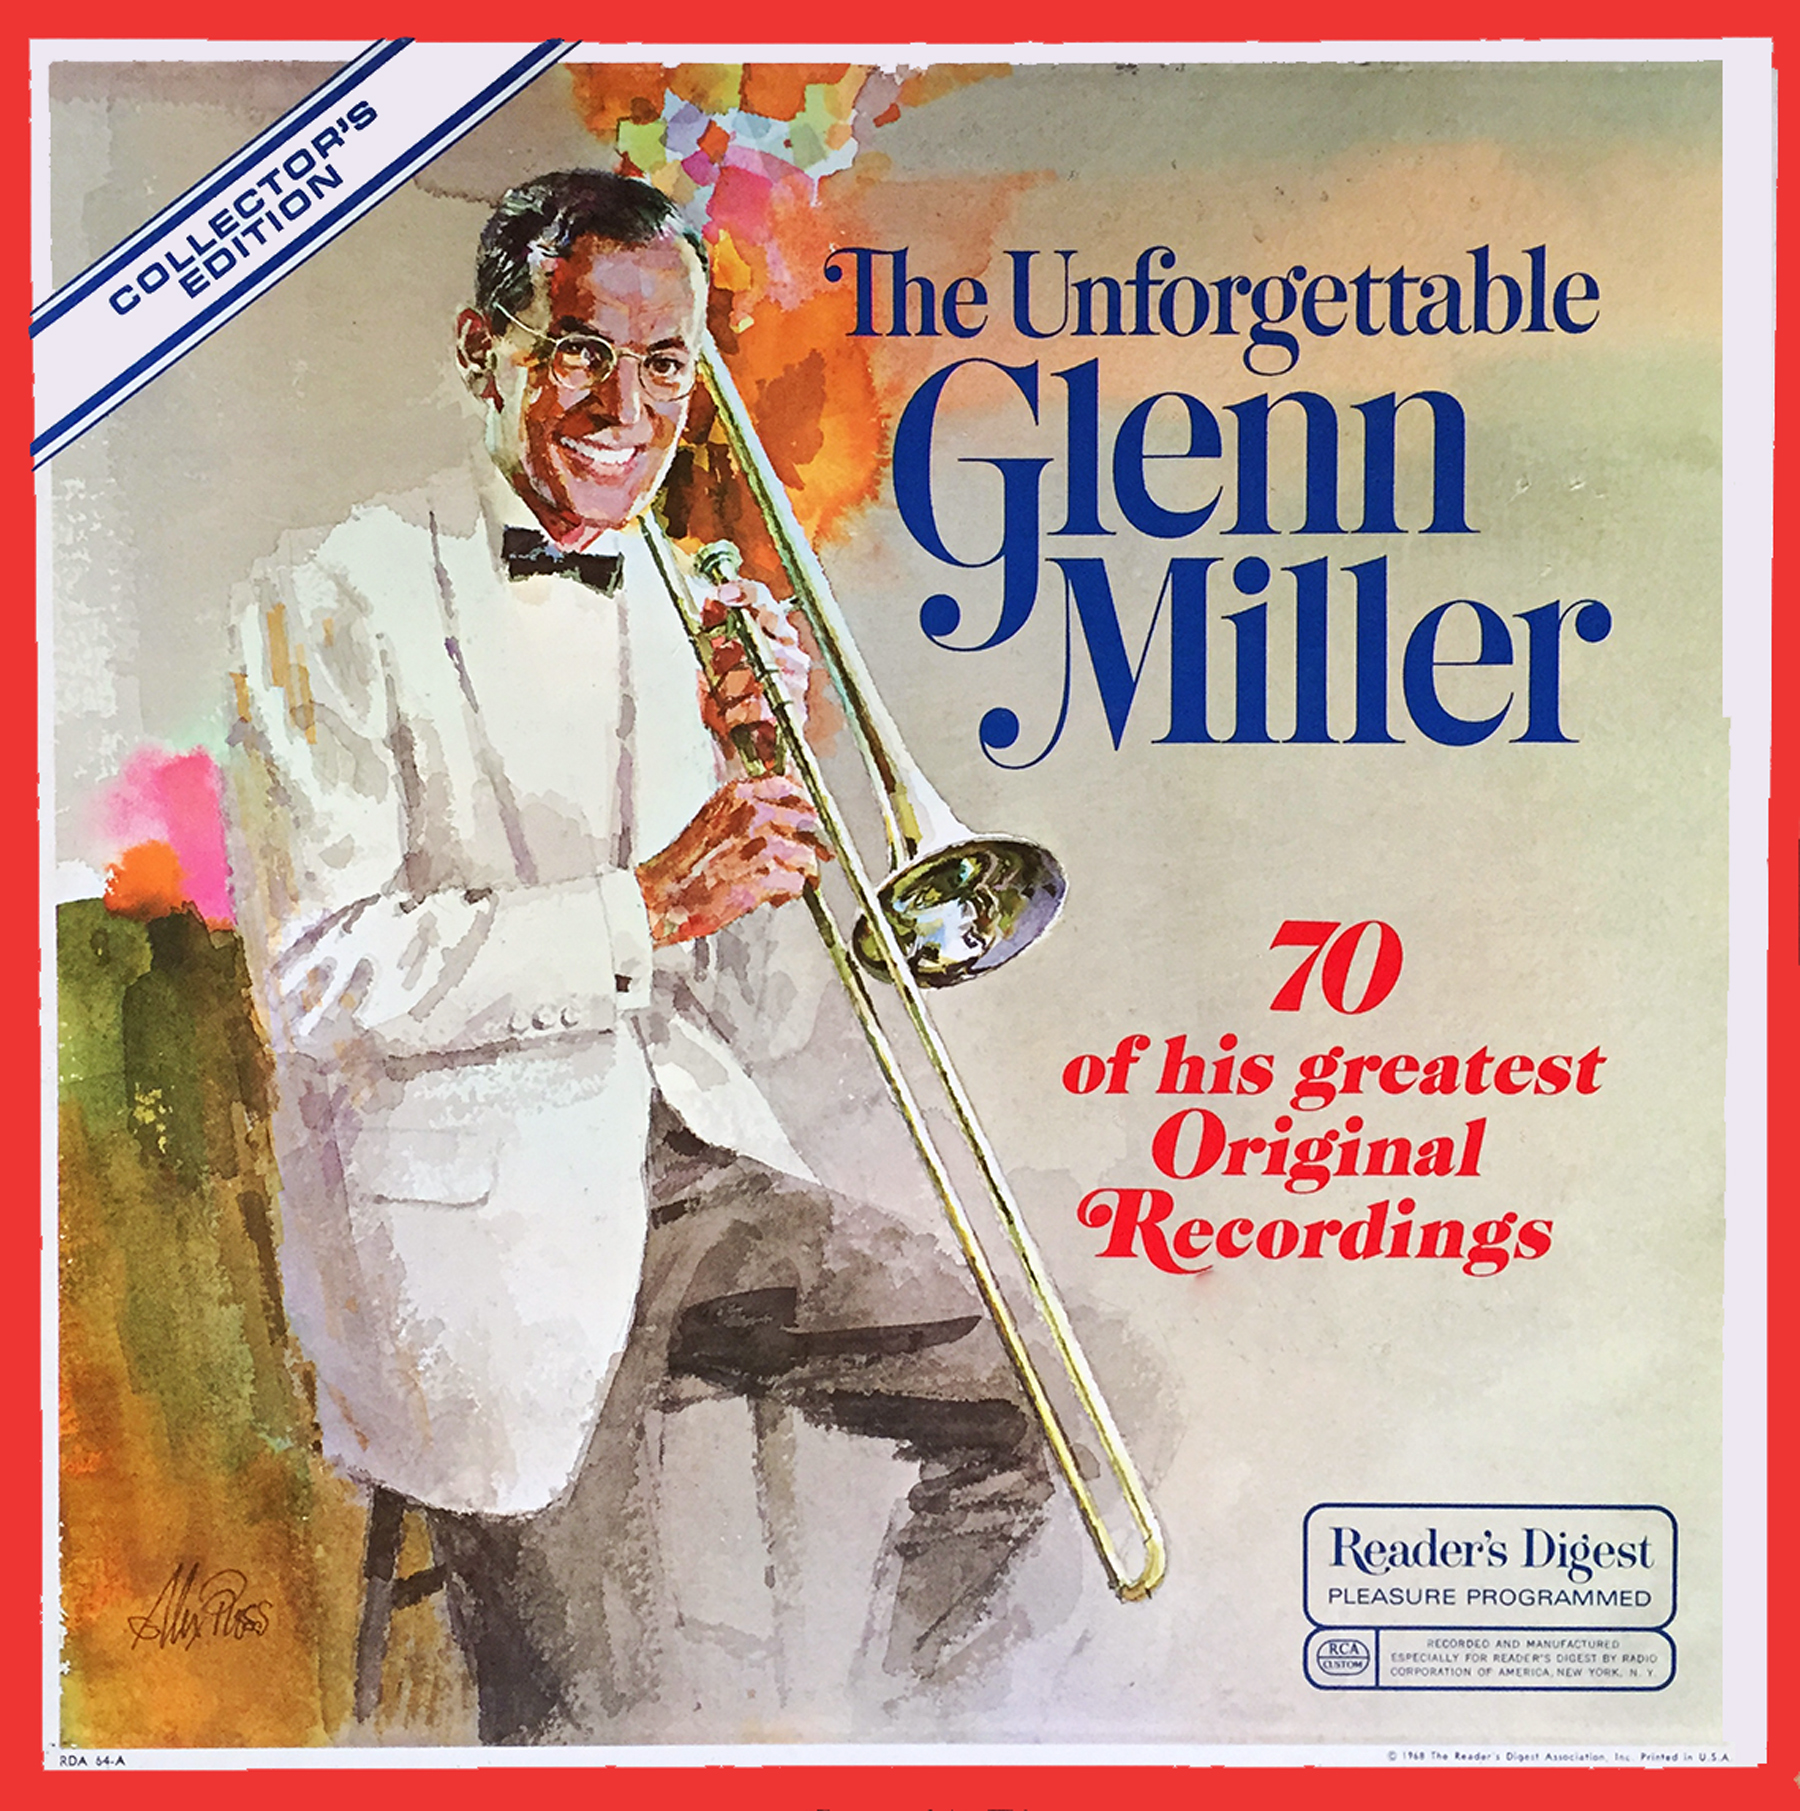 RDA64 - Unforgettable Glenn Miller on CD